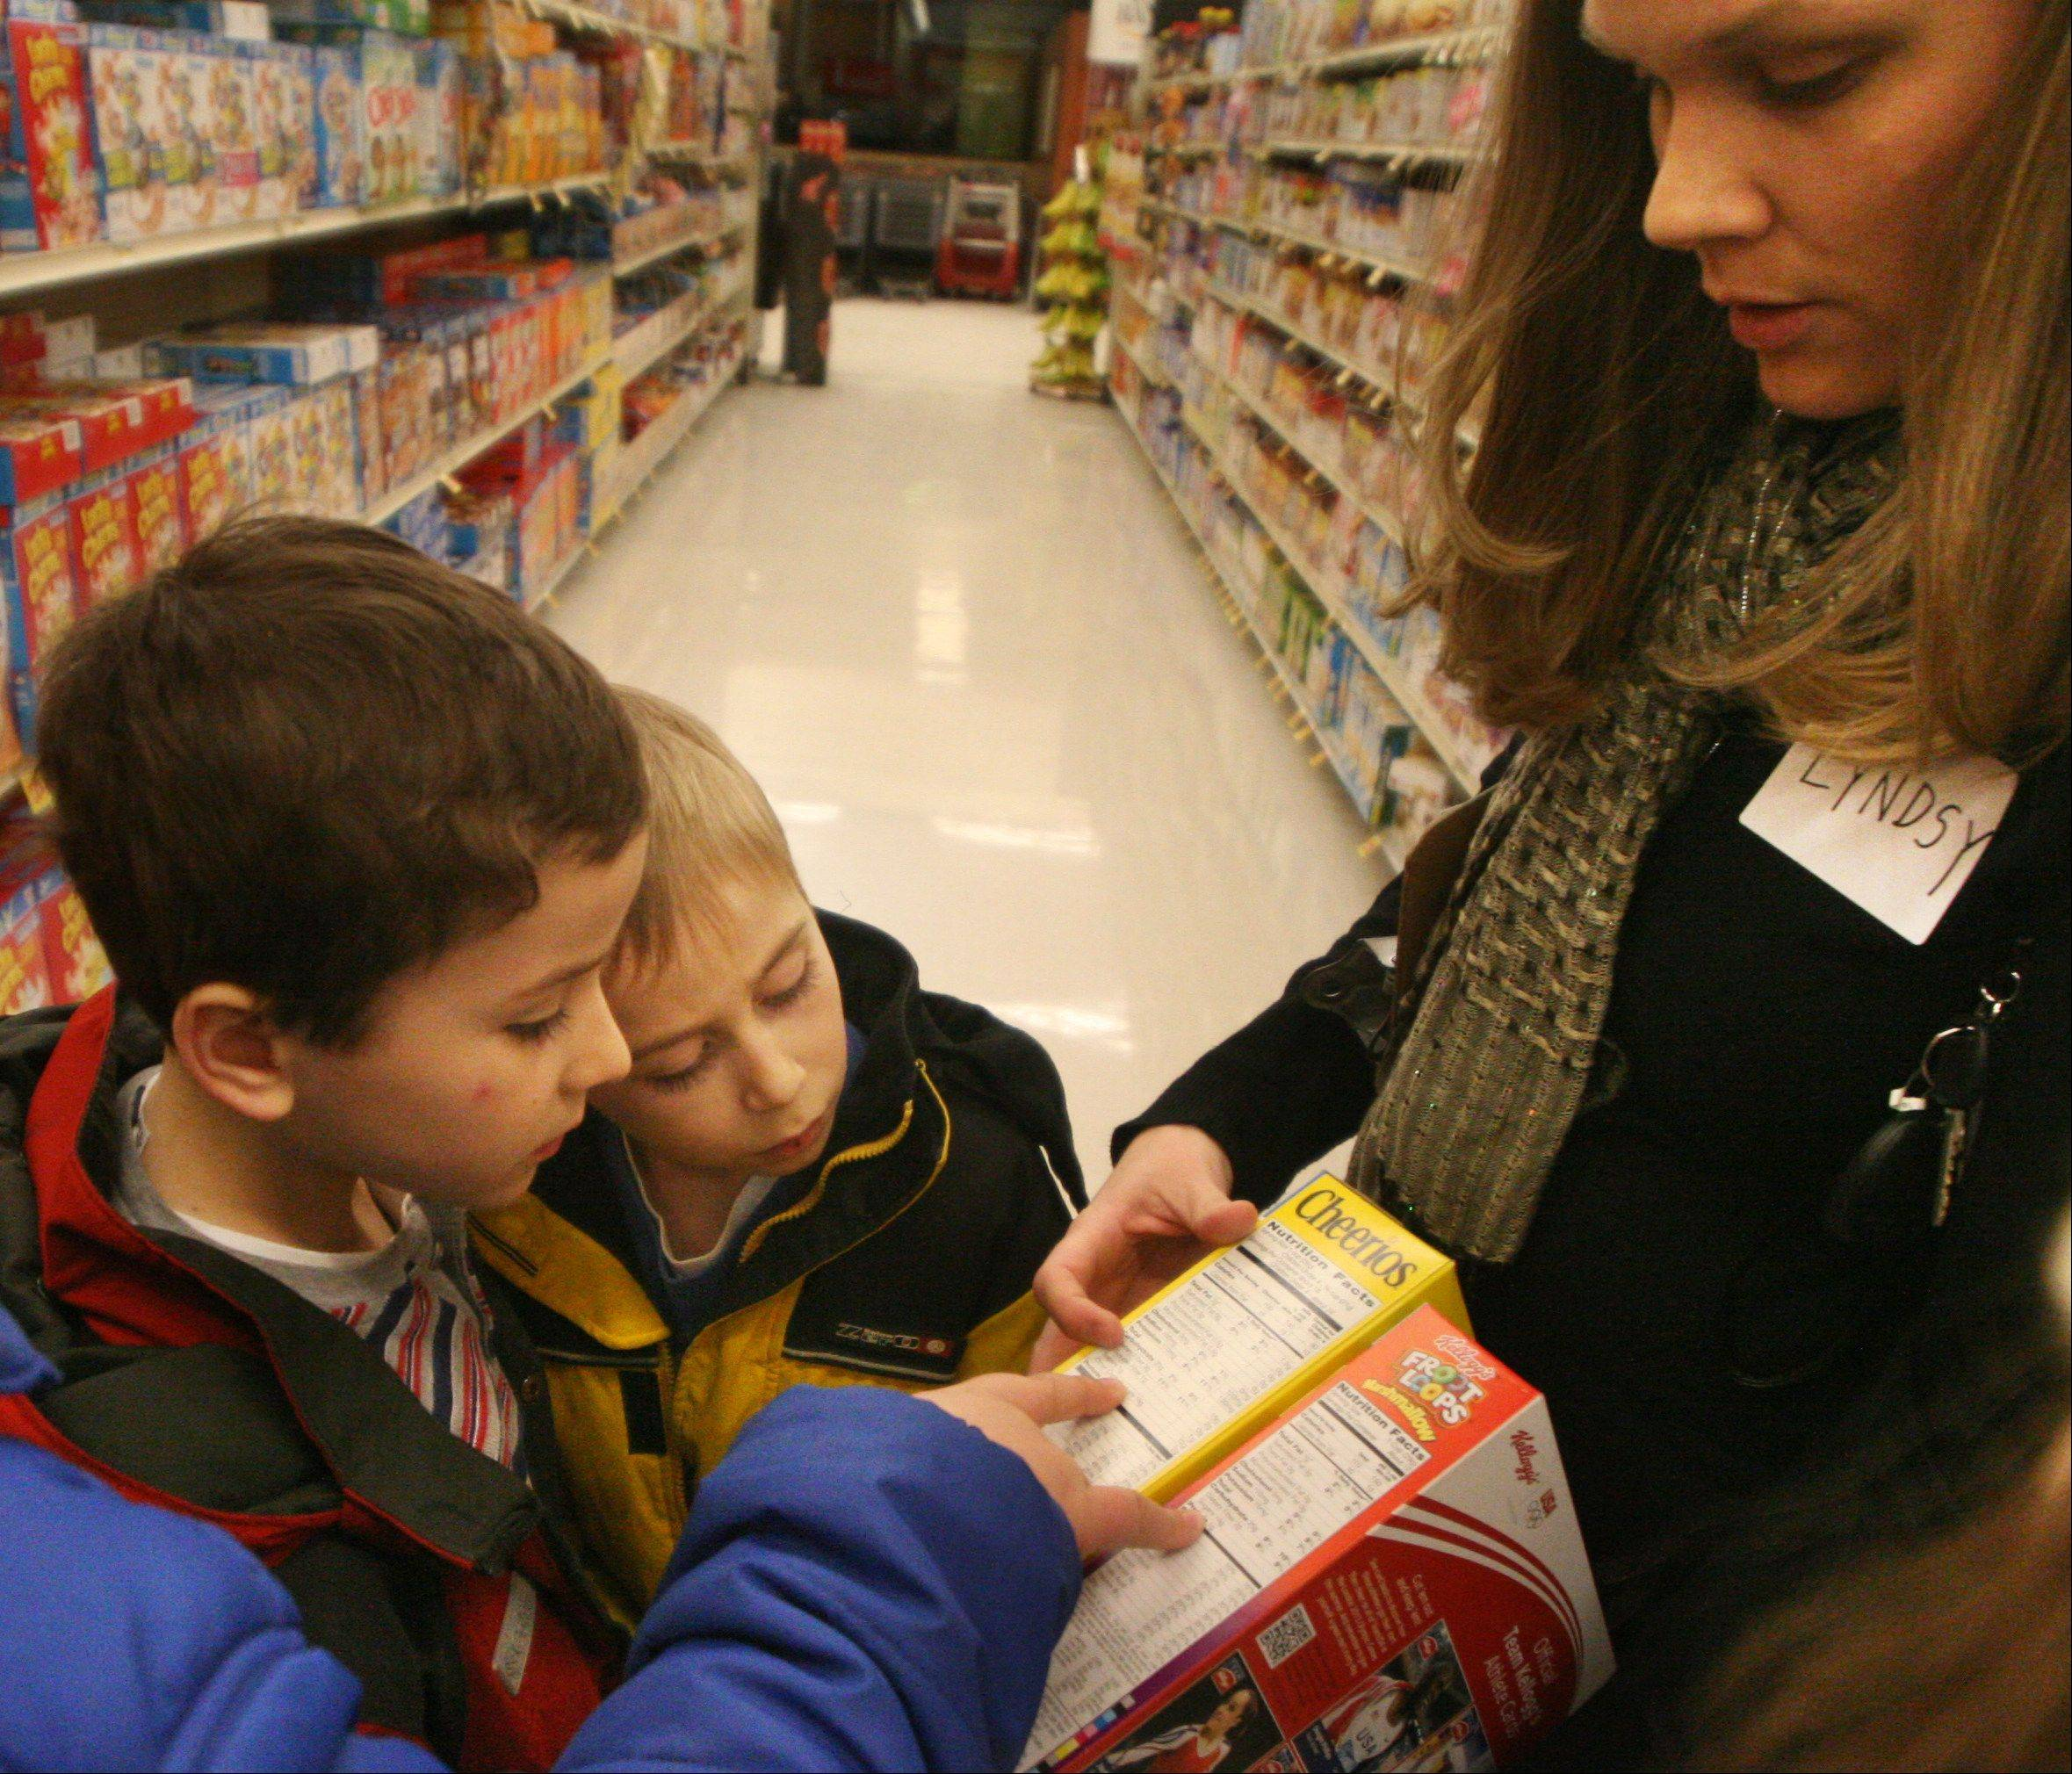 Matthew Toniolo, 7, and his bother Jacob, 9, of Bartlett, compare nutrition facts on cereal boxes with program instructor Lyndsy Eltman at a Jewel in Schaumburg during a meeting of the Alexian Brothers Fit Kids program. The grocery store trip focuses on learning to read food labels critically.